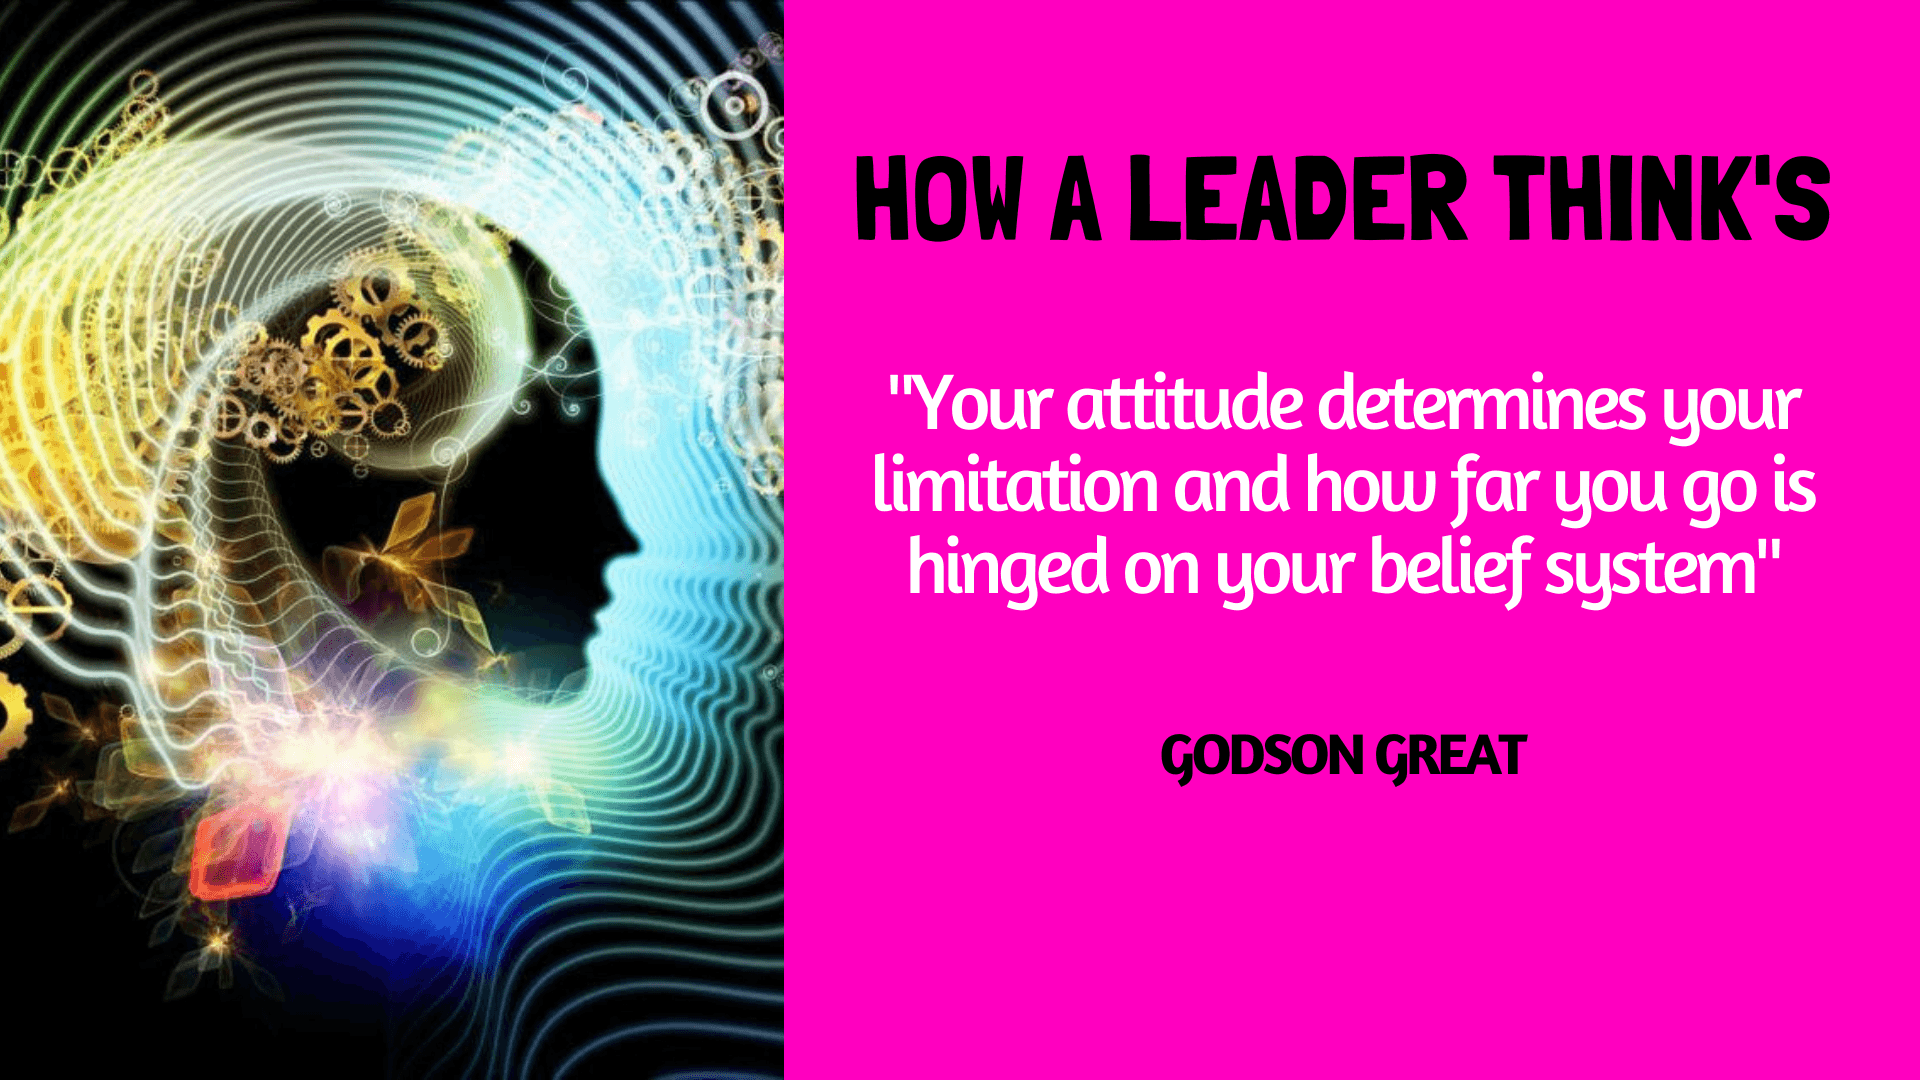 how a leader thinks by Godson great